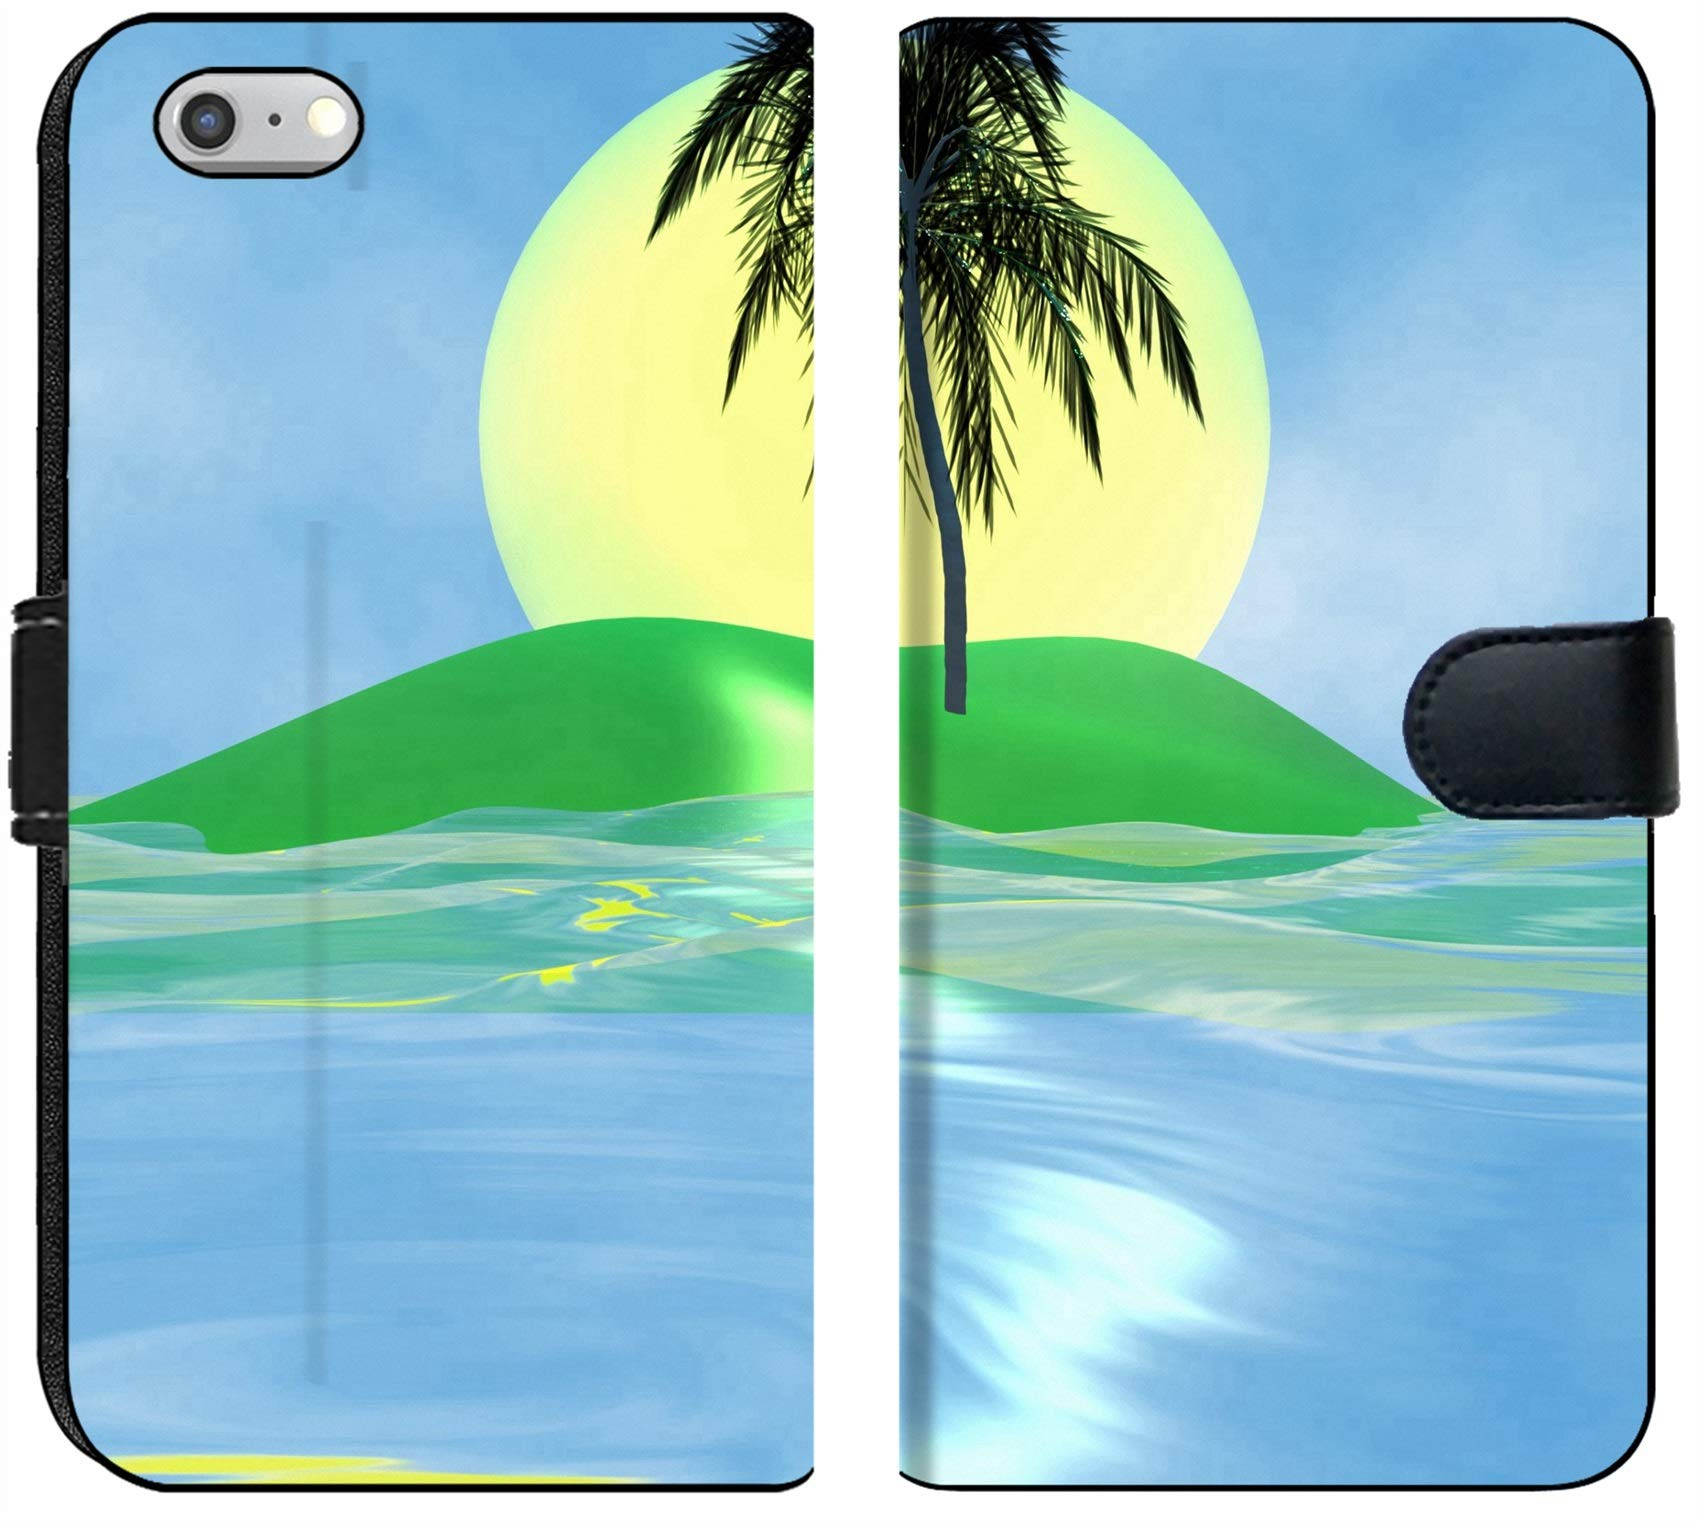 Luxlady iPhone 6 Plus / 6s Plus Flip Fabric Wallet Case Solar Island with a Palm Tree in The Huge Dark Blue sea Image ID 2842537